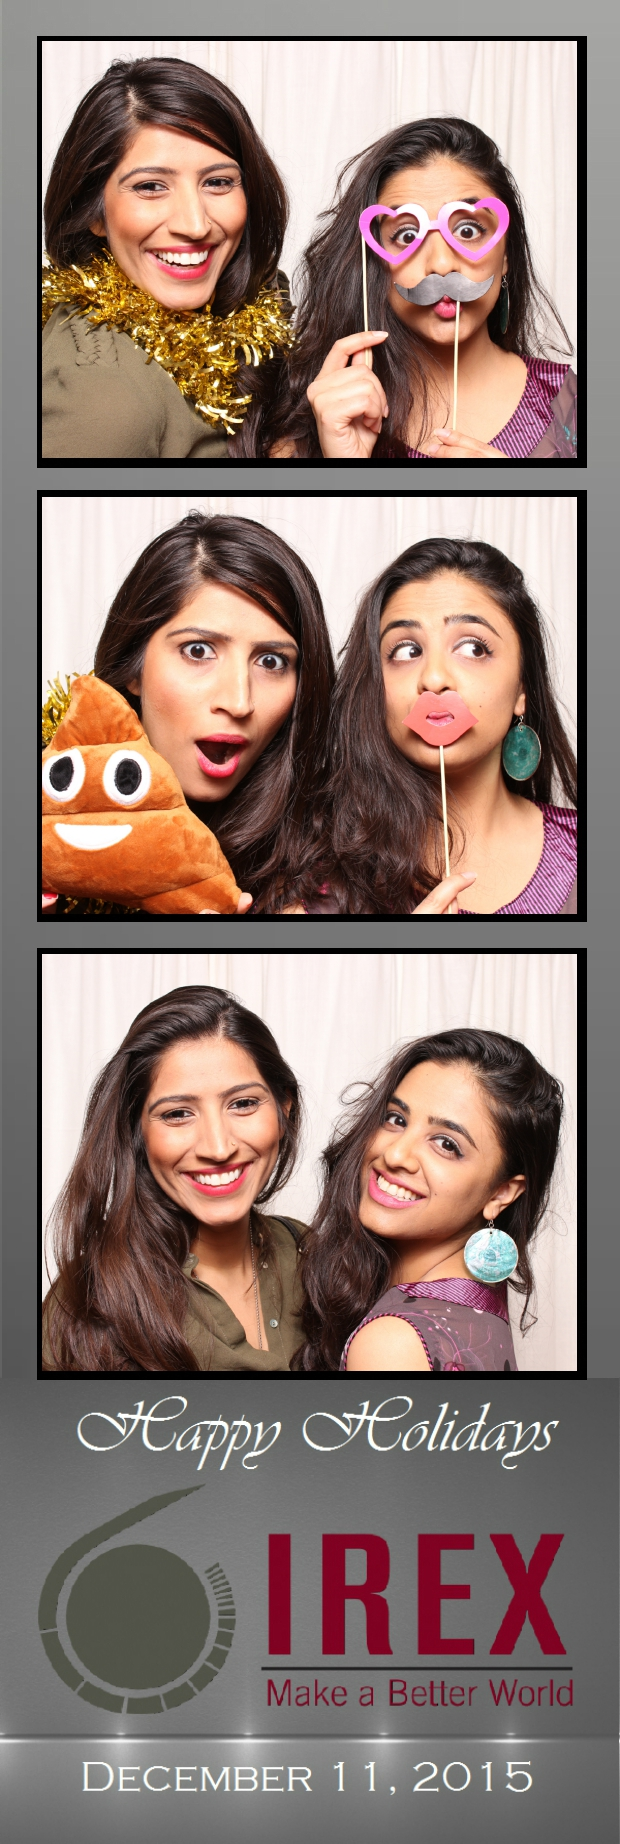 Guest House Events Photo Booth Strips IREX (77).jpg